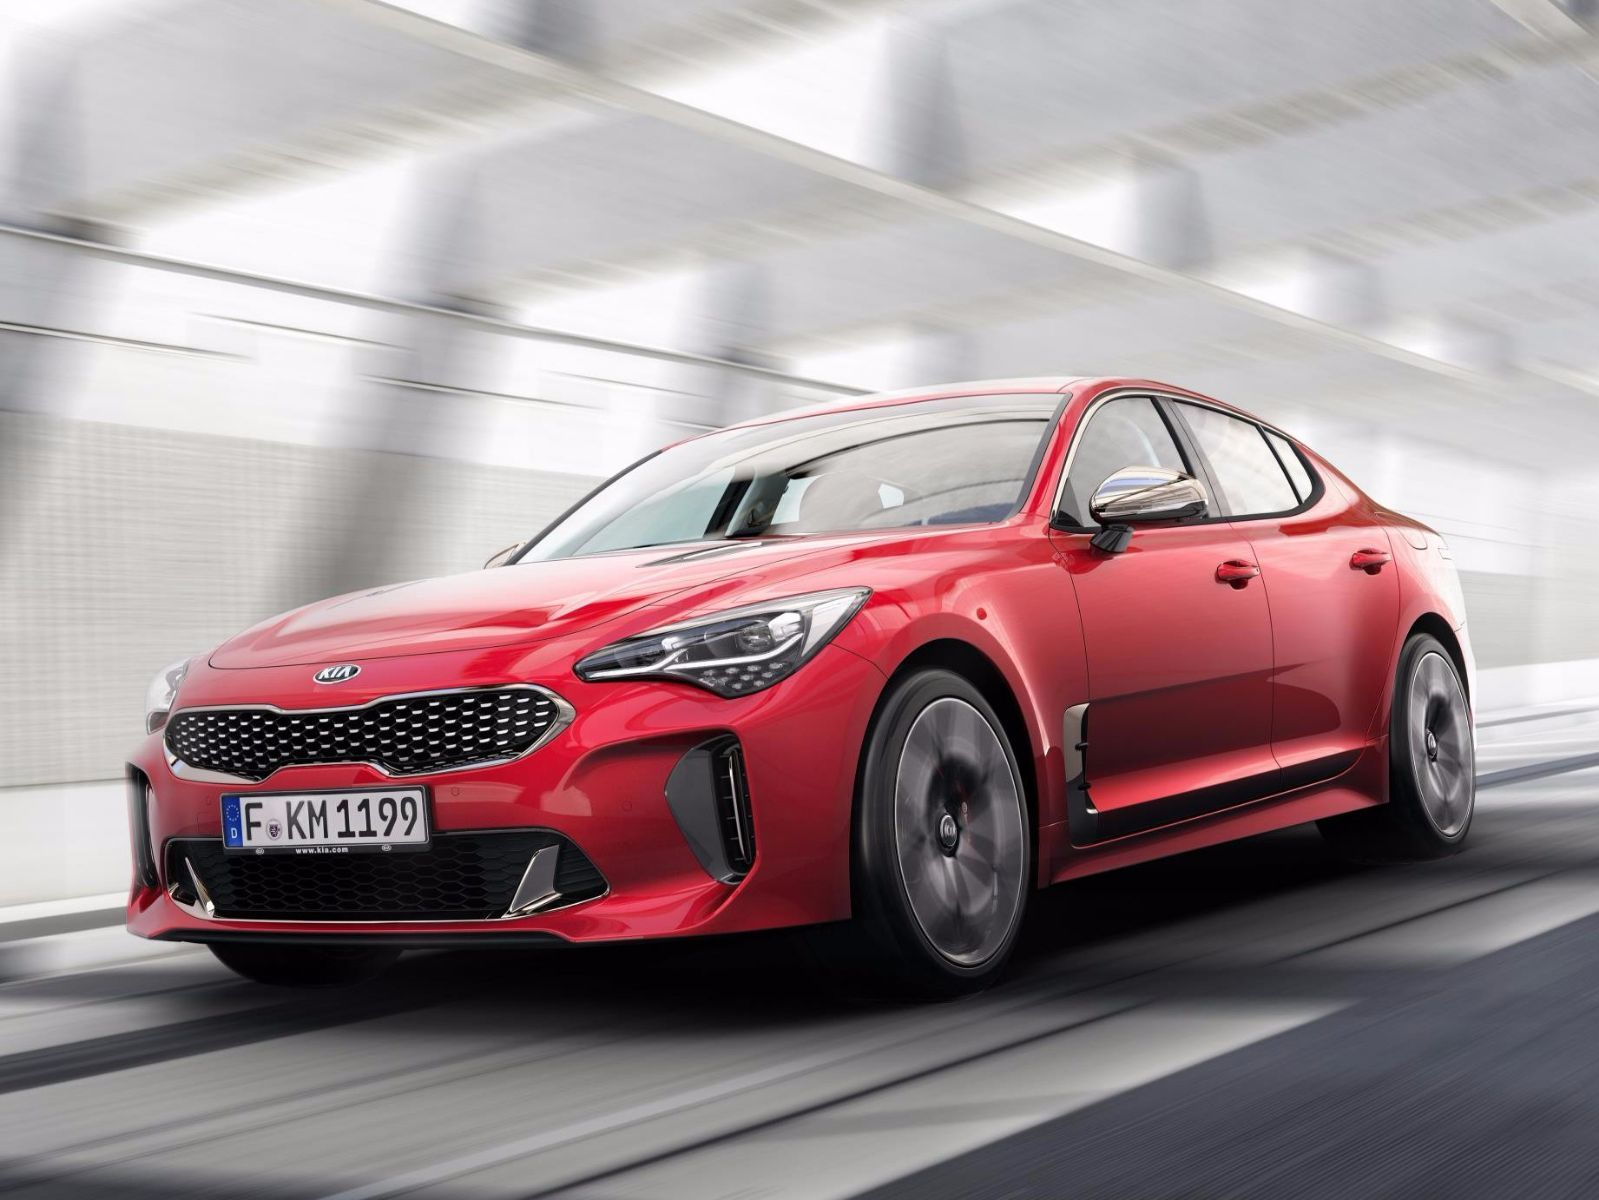 Business Insider: The Kia Stinger Should Scare BMW and Audi